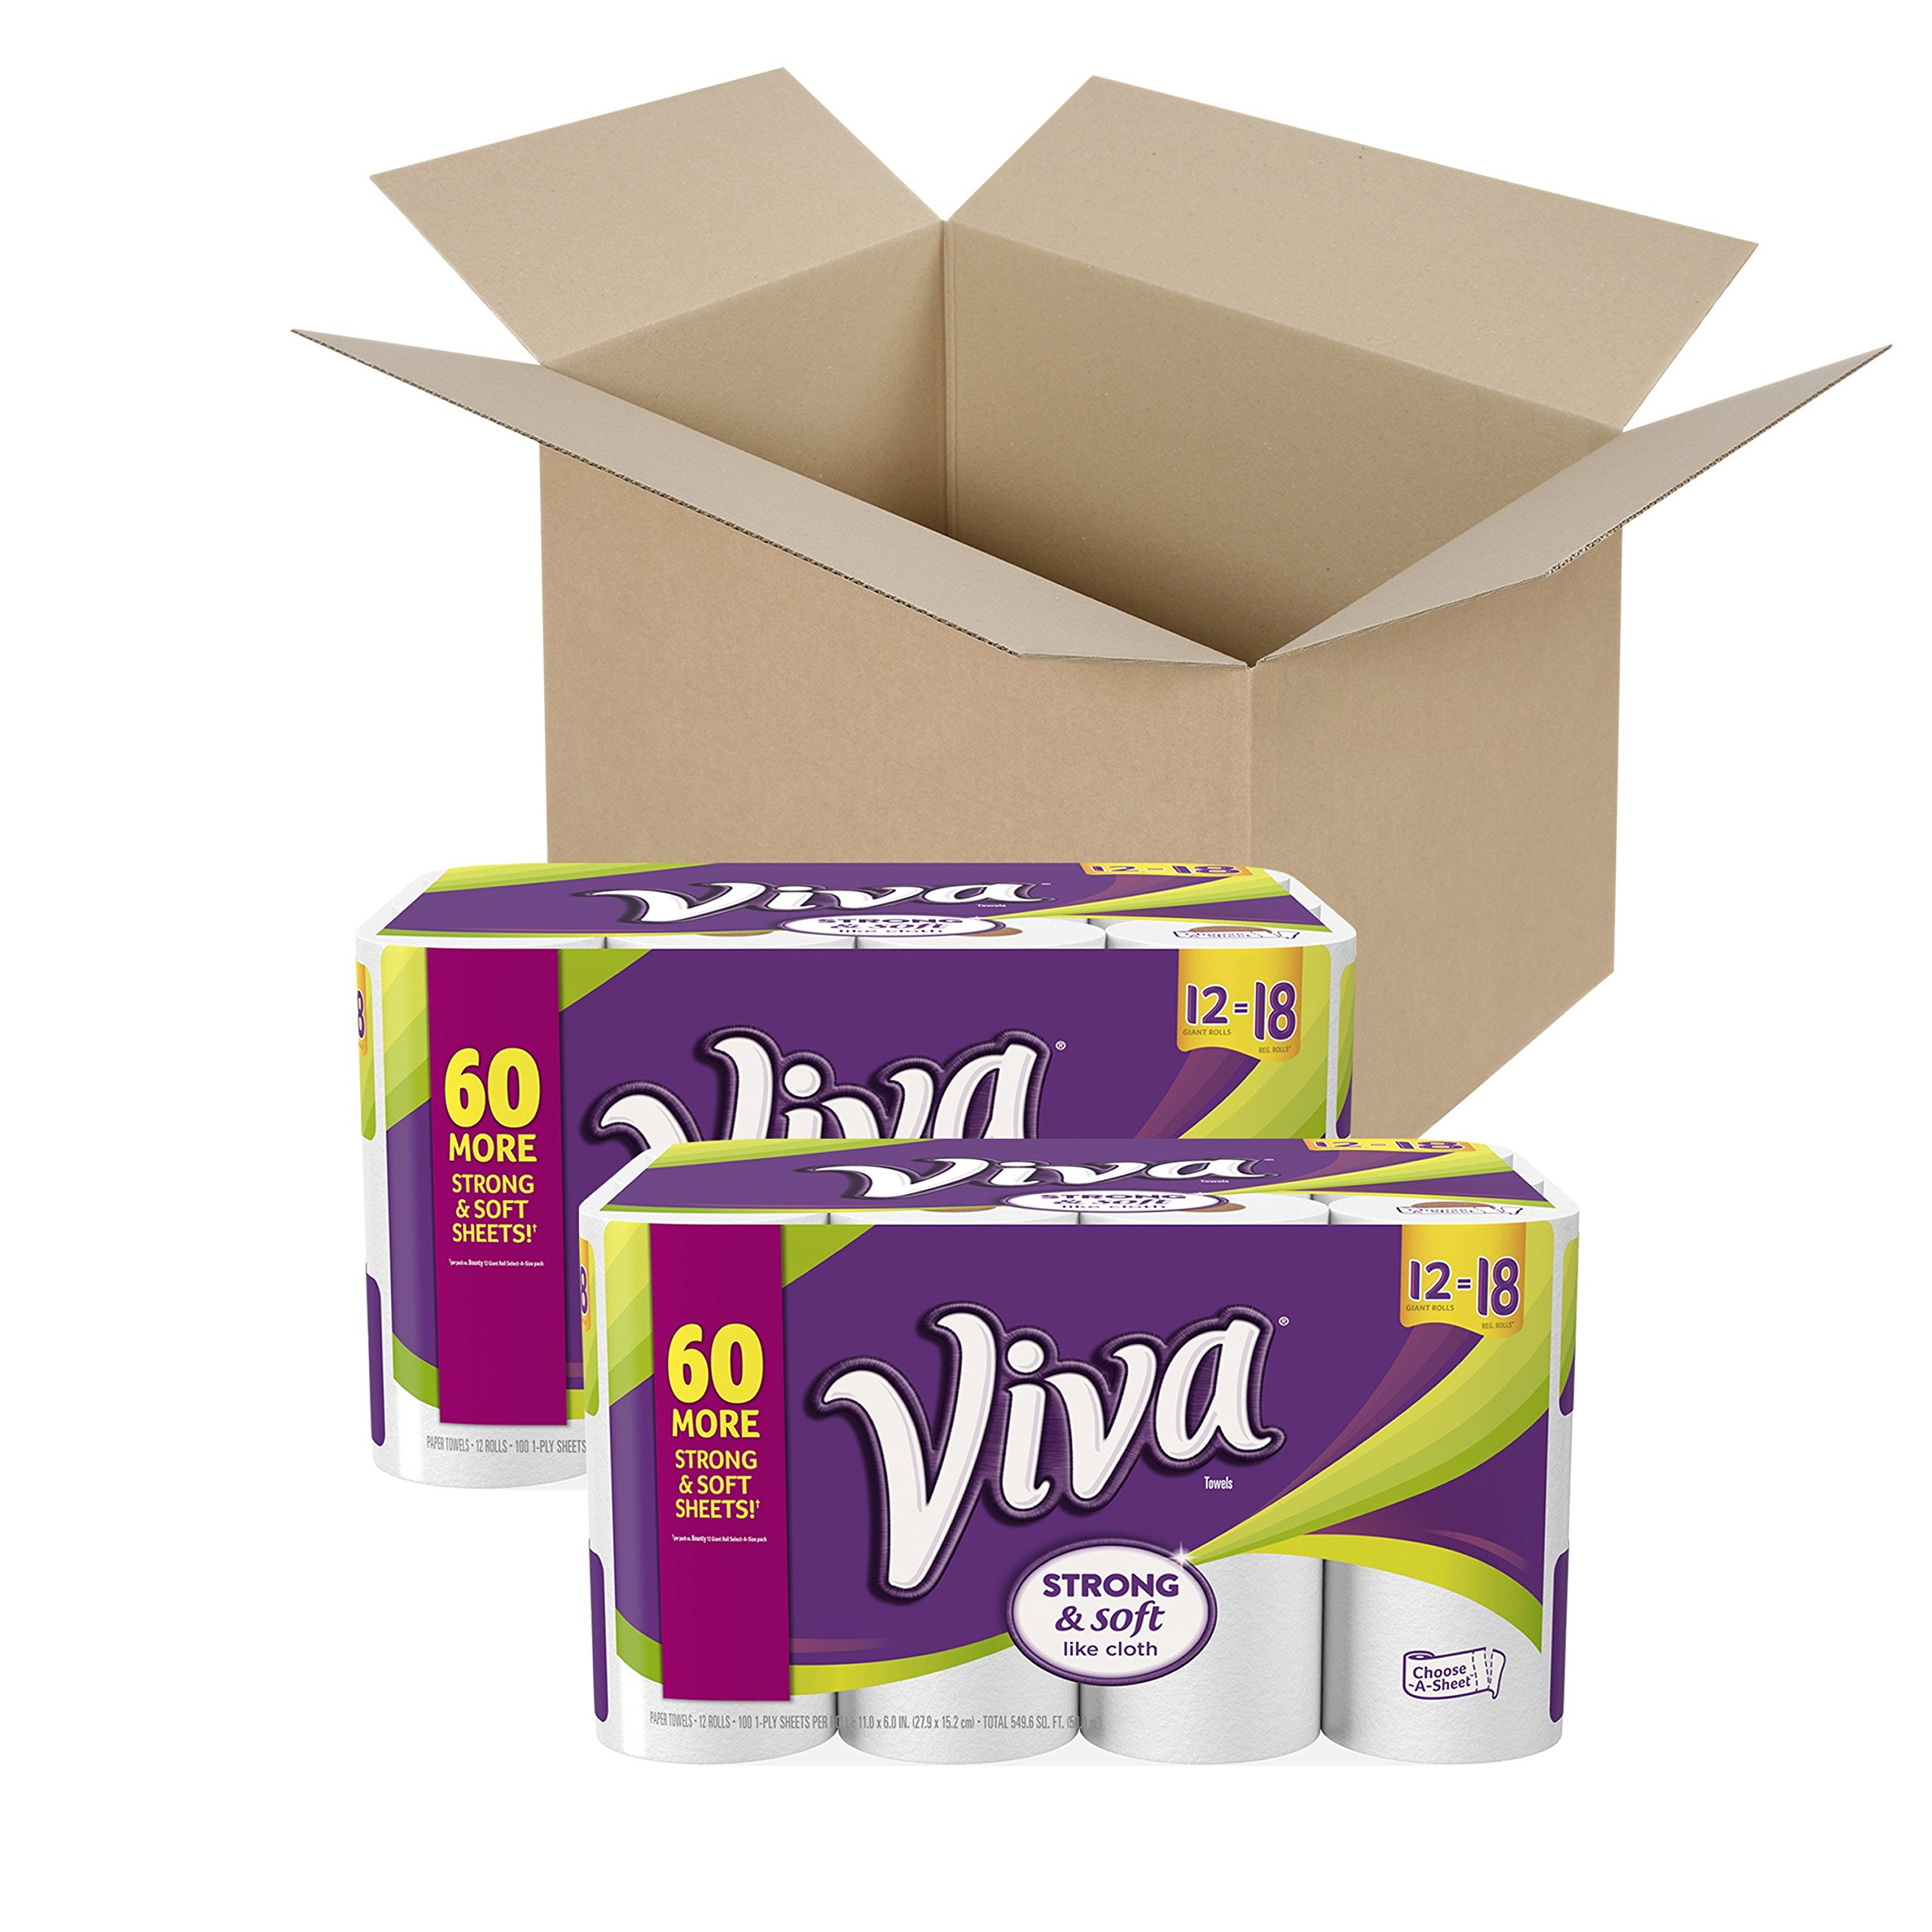 VIVA Choose-A-Sheet Paper Towels White Big Plus Roll (Pack of 4 6-Roll Packs), Cloth-Like Texture, Strong & Soft Paper Towels for Ultimate Clean